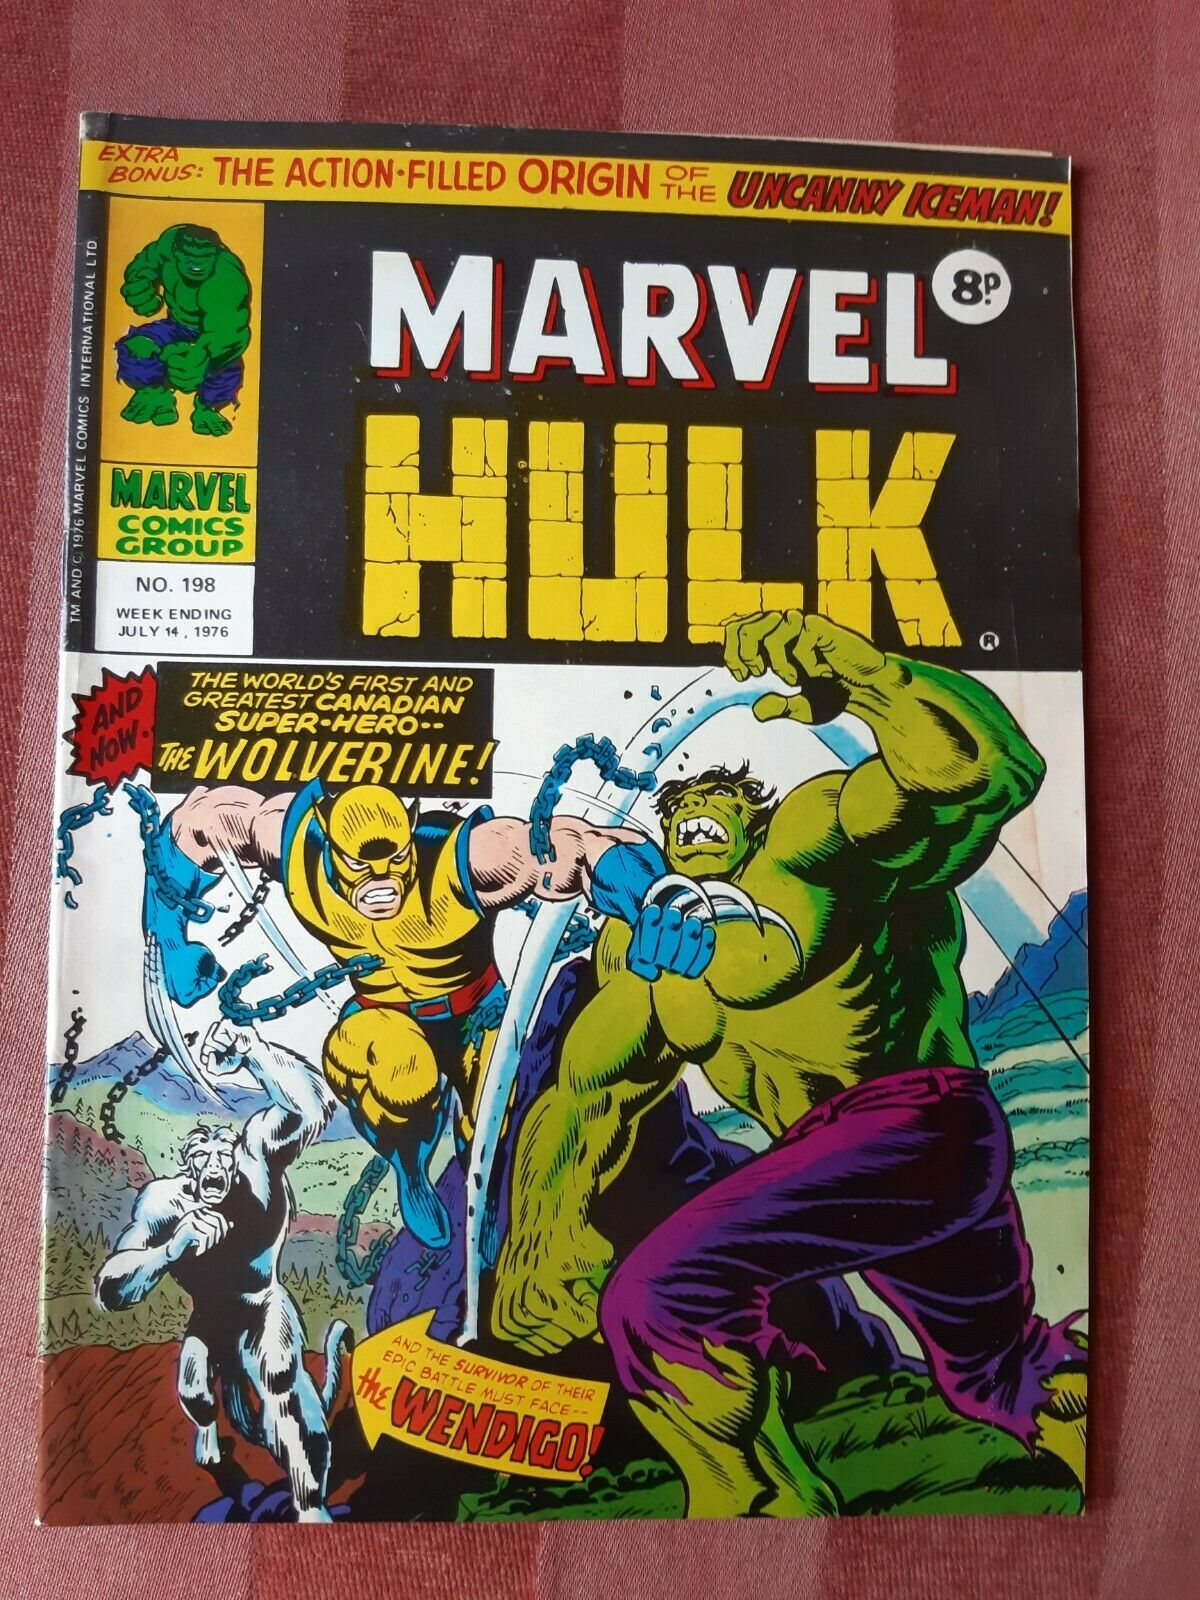 ?MIGHTY WORLD OF MARVEL # 198 1ST WOLVERINE INCREDIBLE HULK # 181 UK 1976?